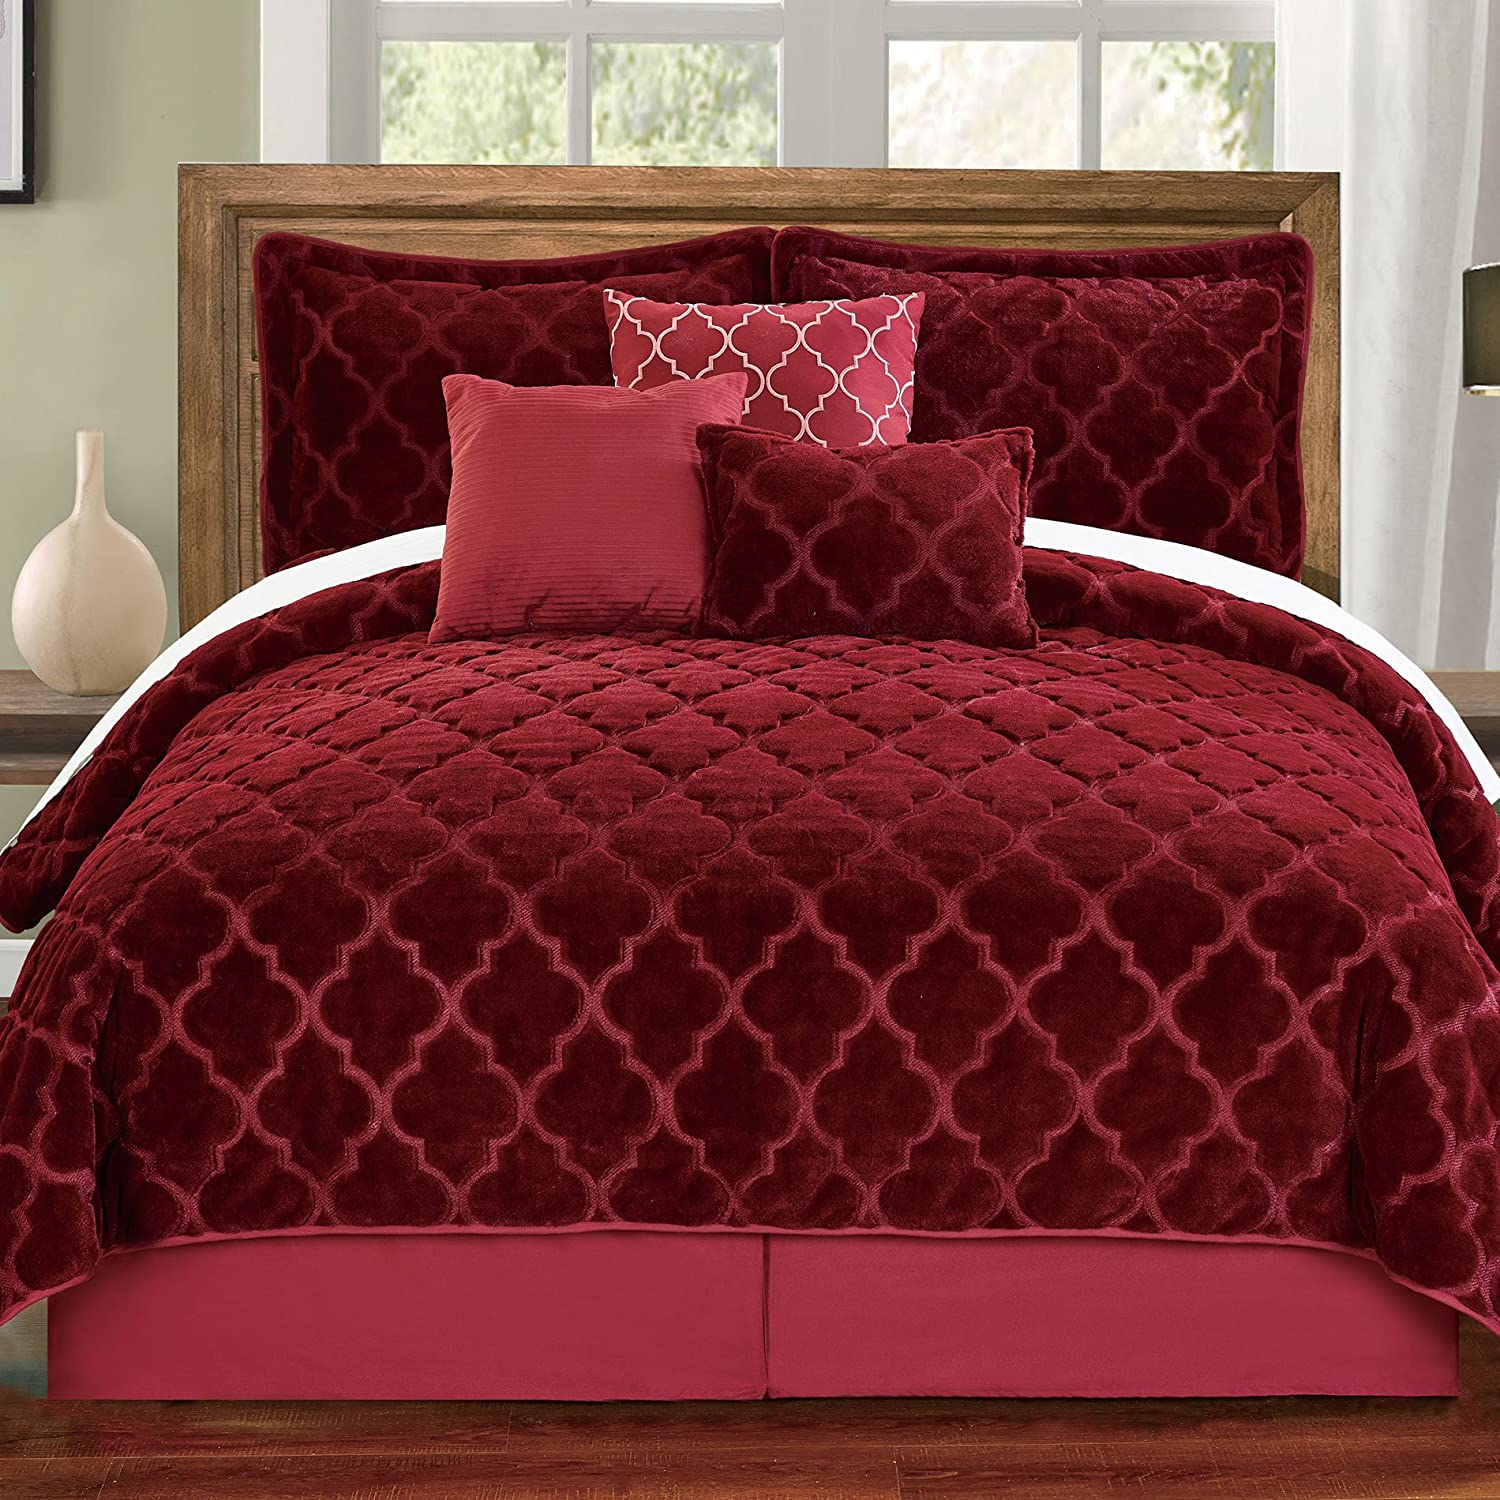 Serenta Faux Fur Ogee Embroidery 7 Piece Bedspread Quilts Set, Queen, Burgundy